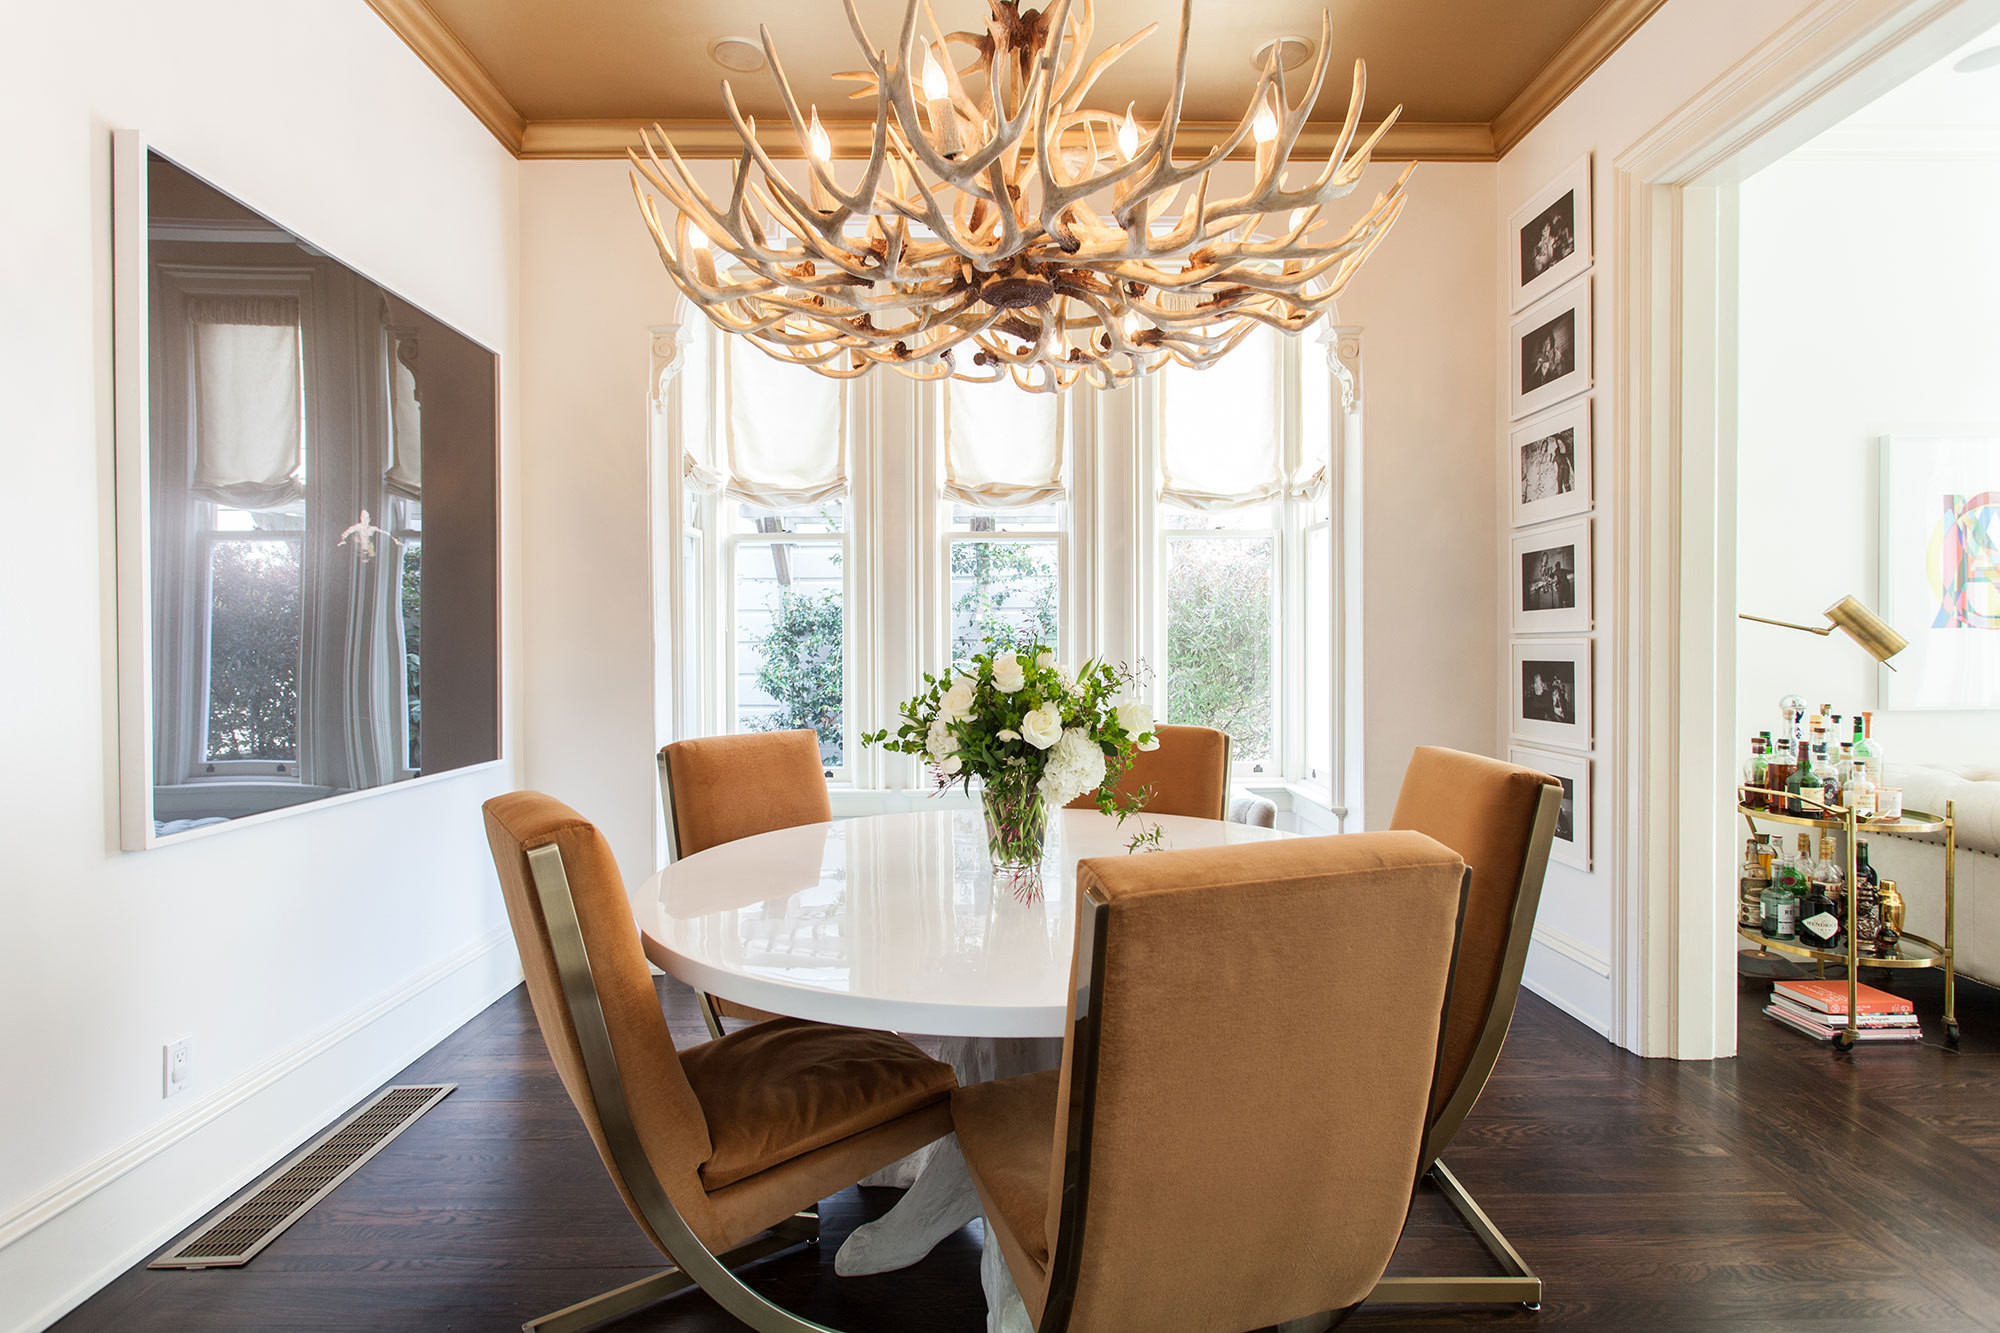 An Antler Chandelier Lends Organic Touch In The Sleeknbspdining Room Of A San